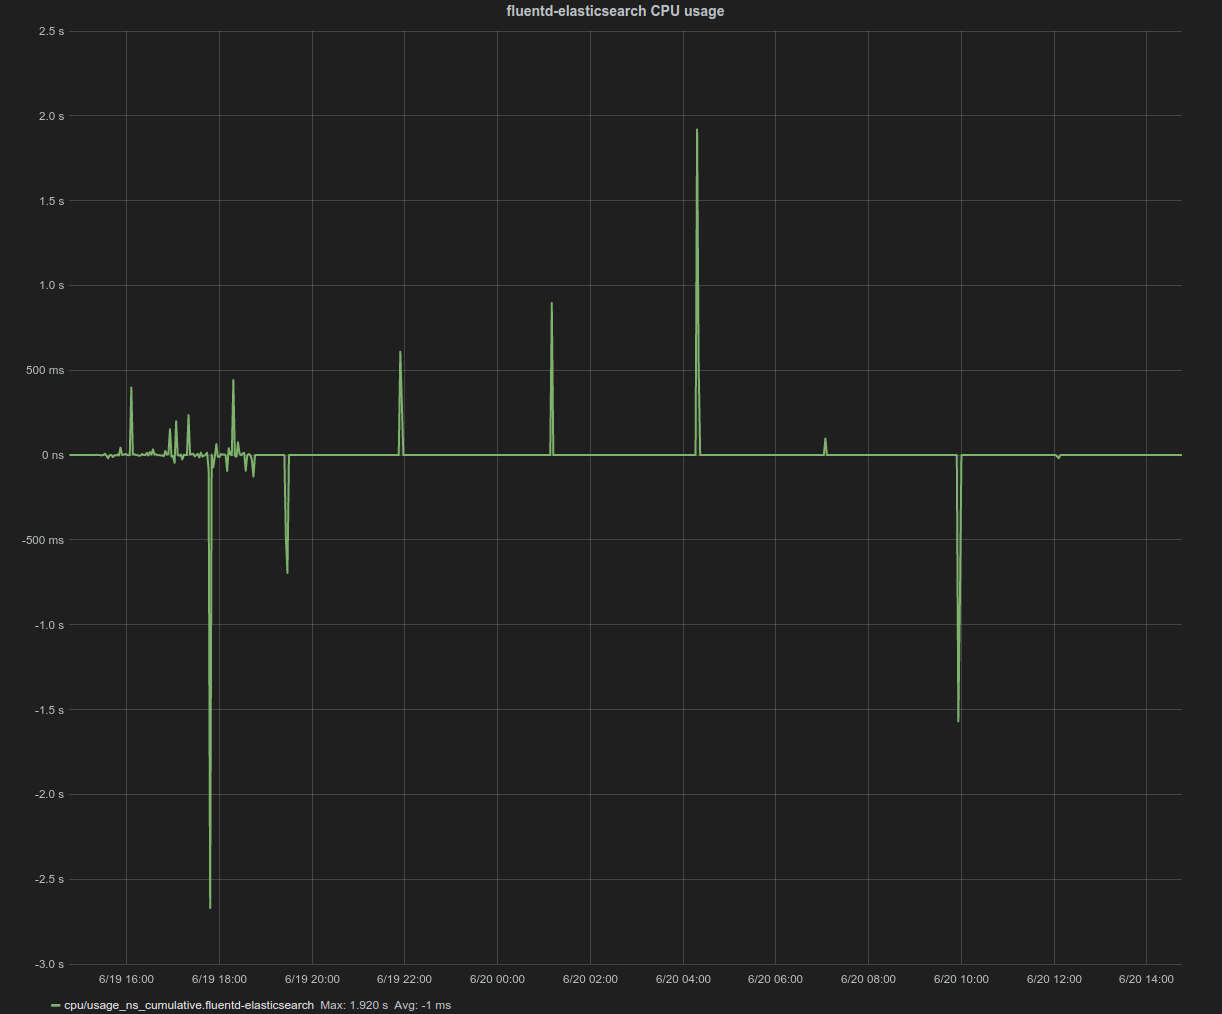 fluentd_cpu_usage_100nodes_4983pods